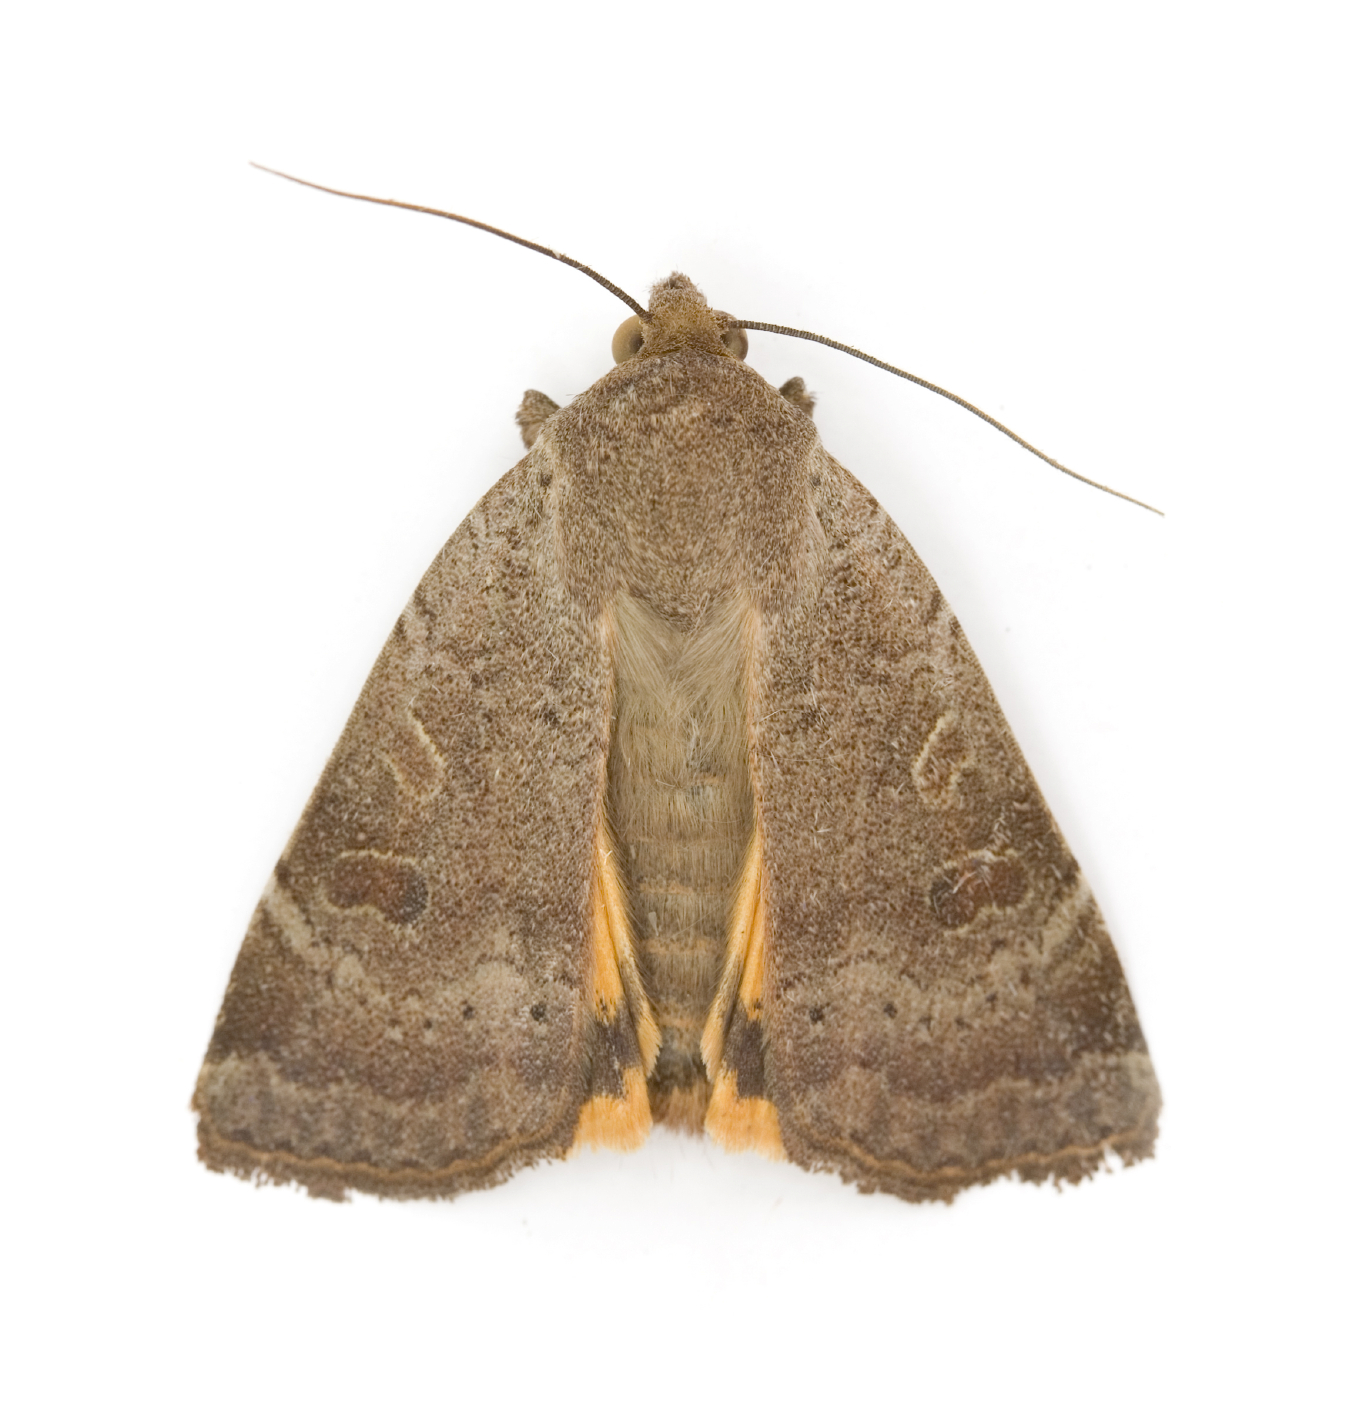 Moth Treatment Removal And Repair Service